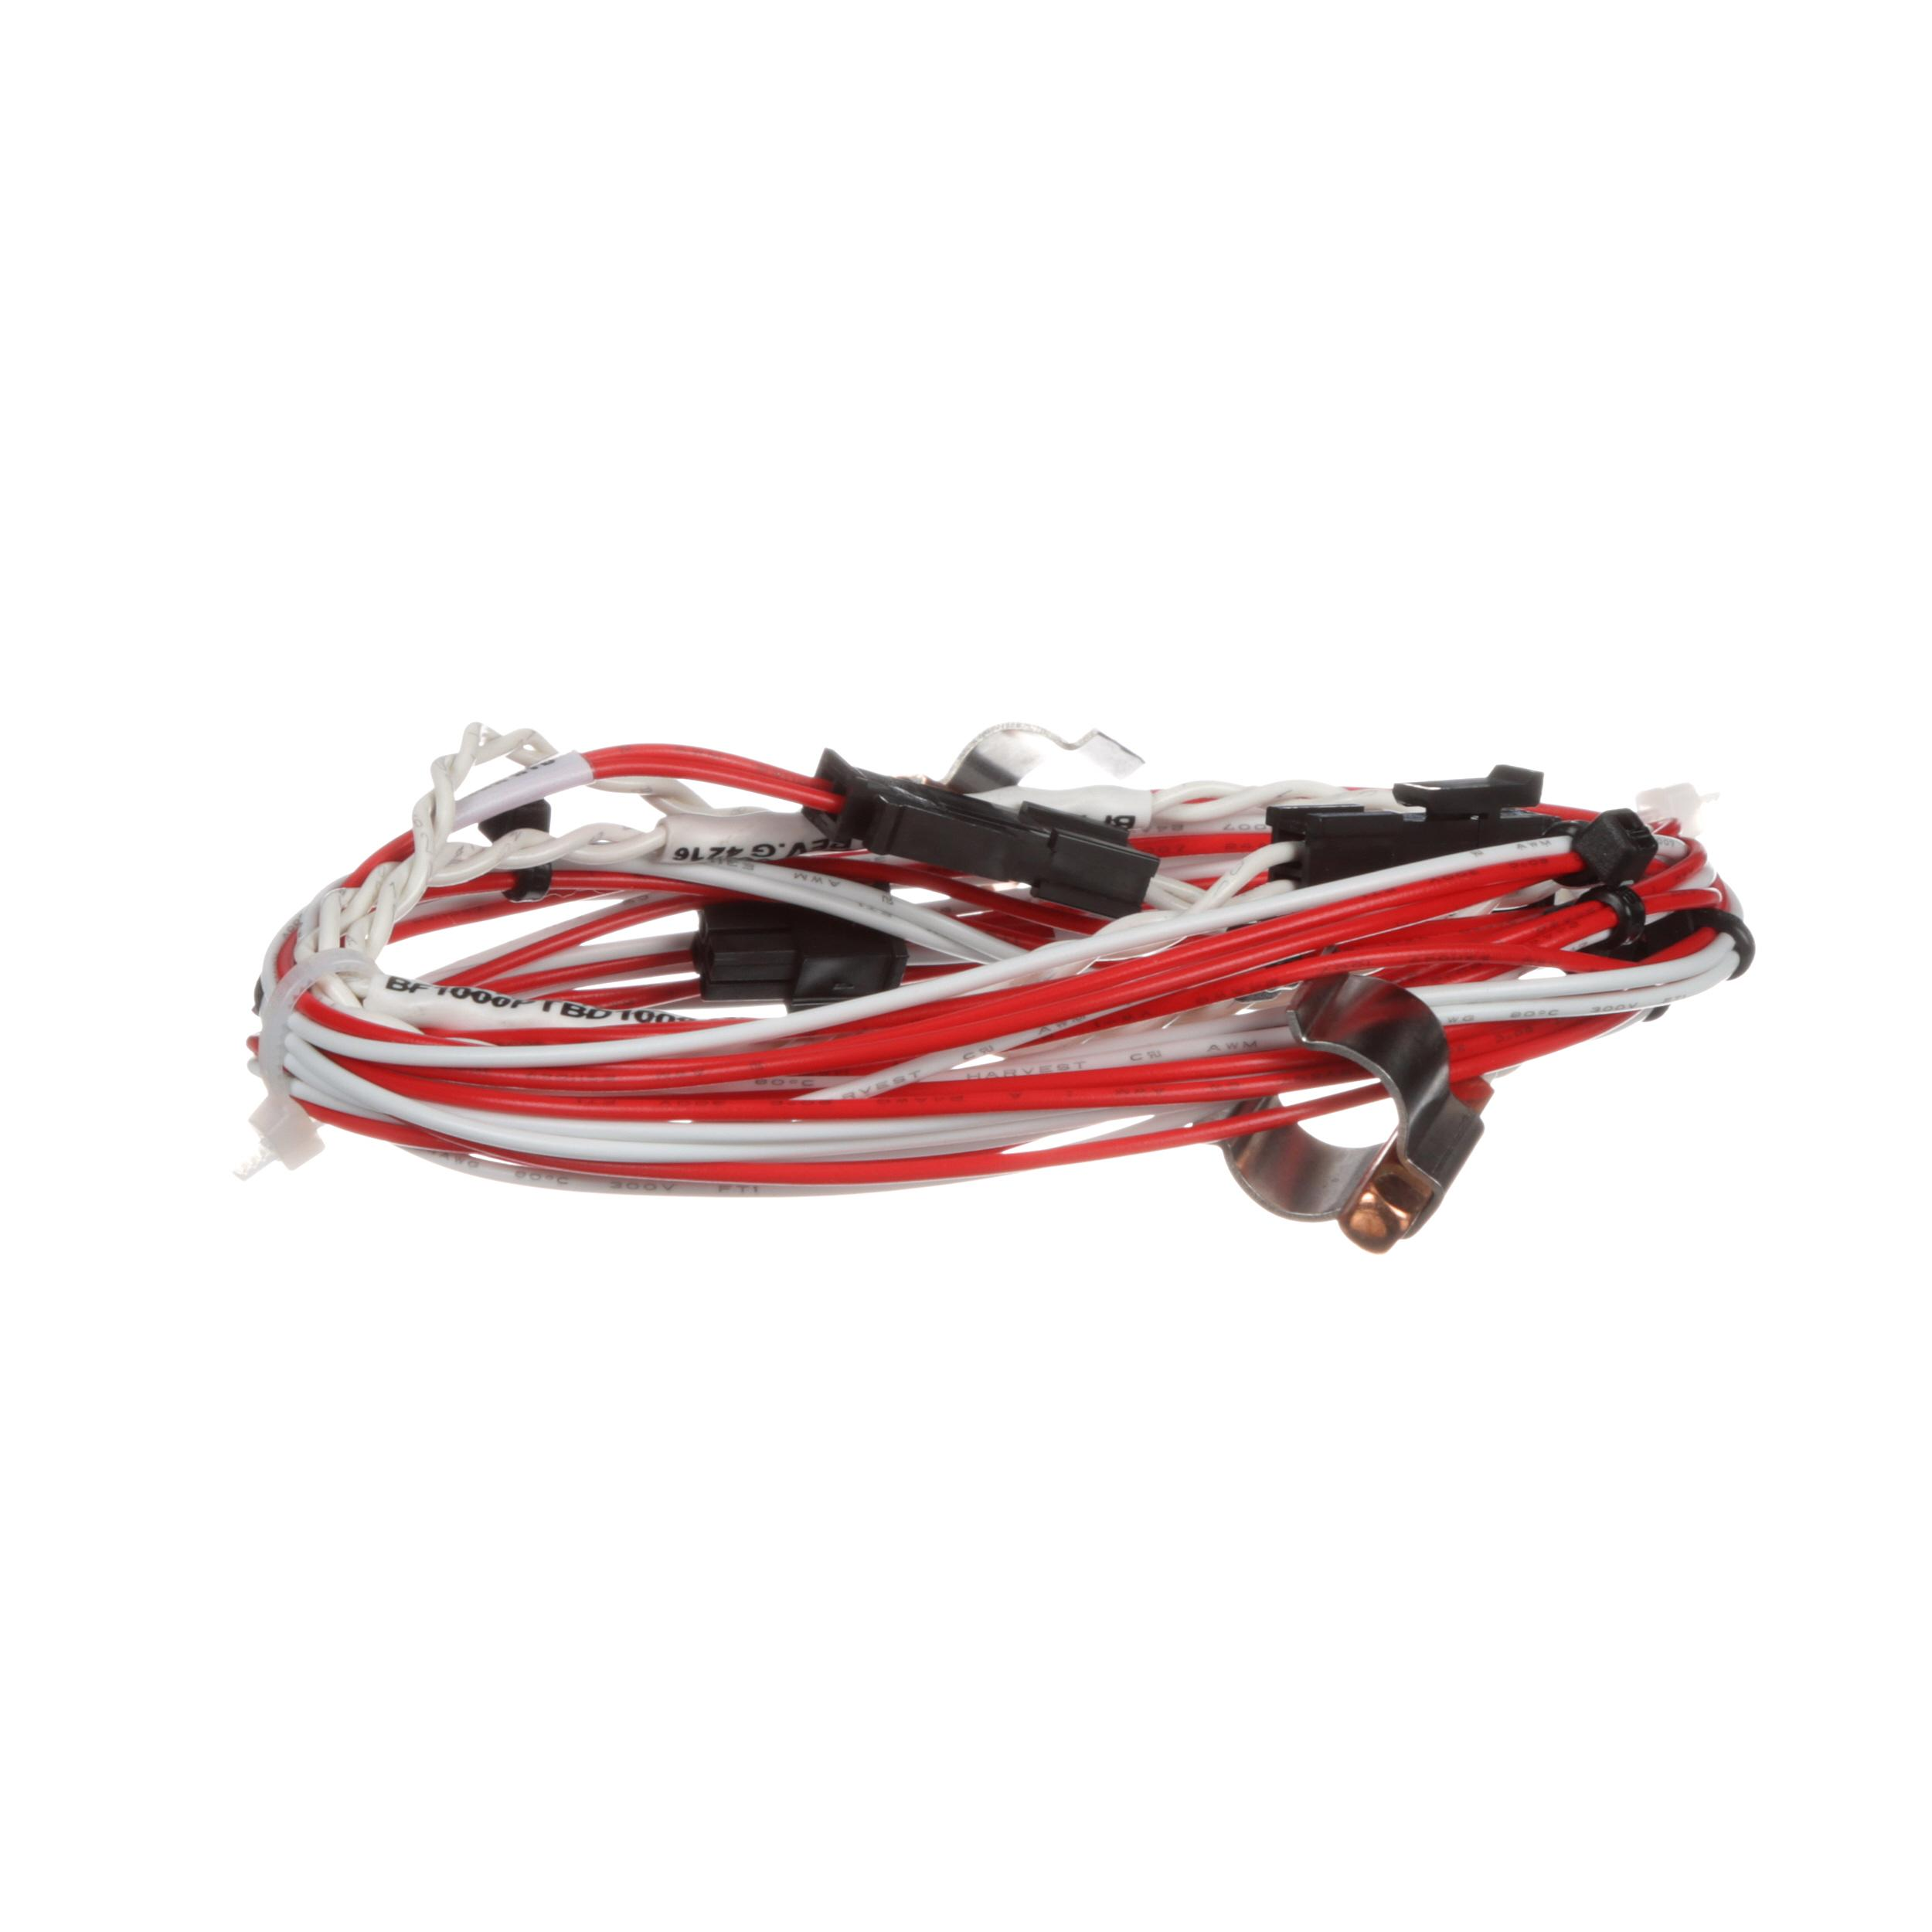 531106_R01_C10?w=300&h=300&img404=ImageComing&v=0&locale=en USen ** fbd wire harness and sensor part 12 2059 0001  at aneh.co